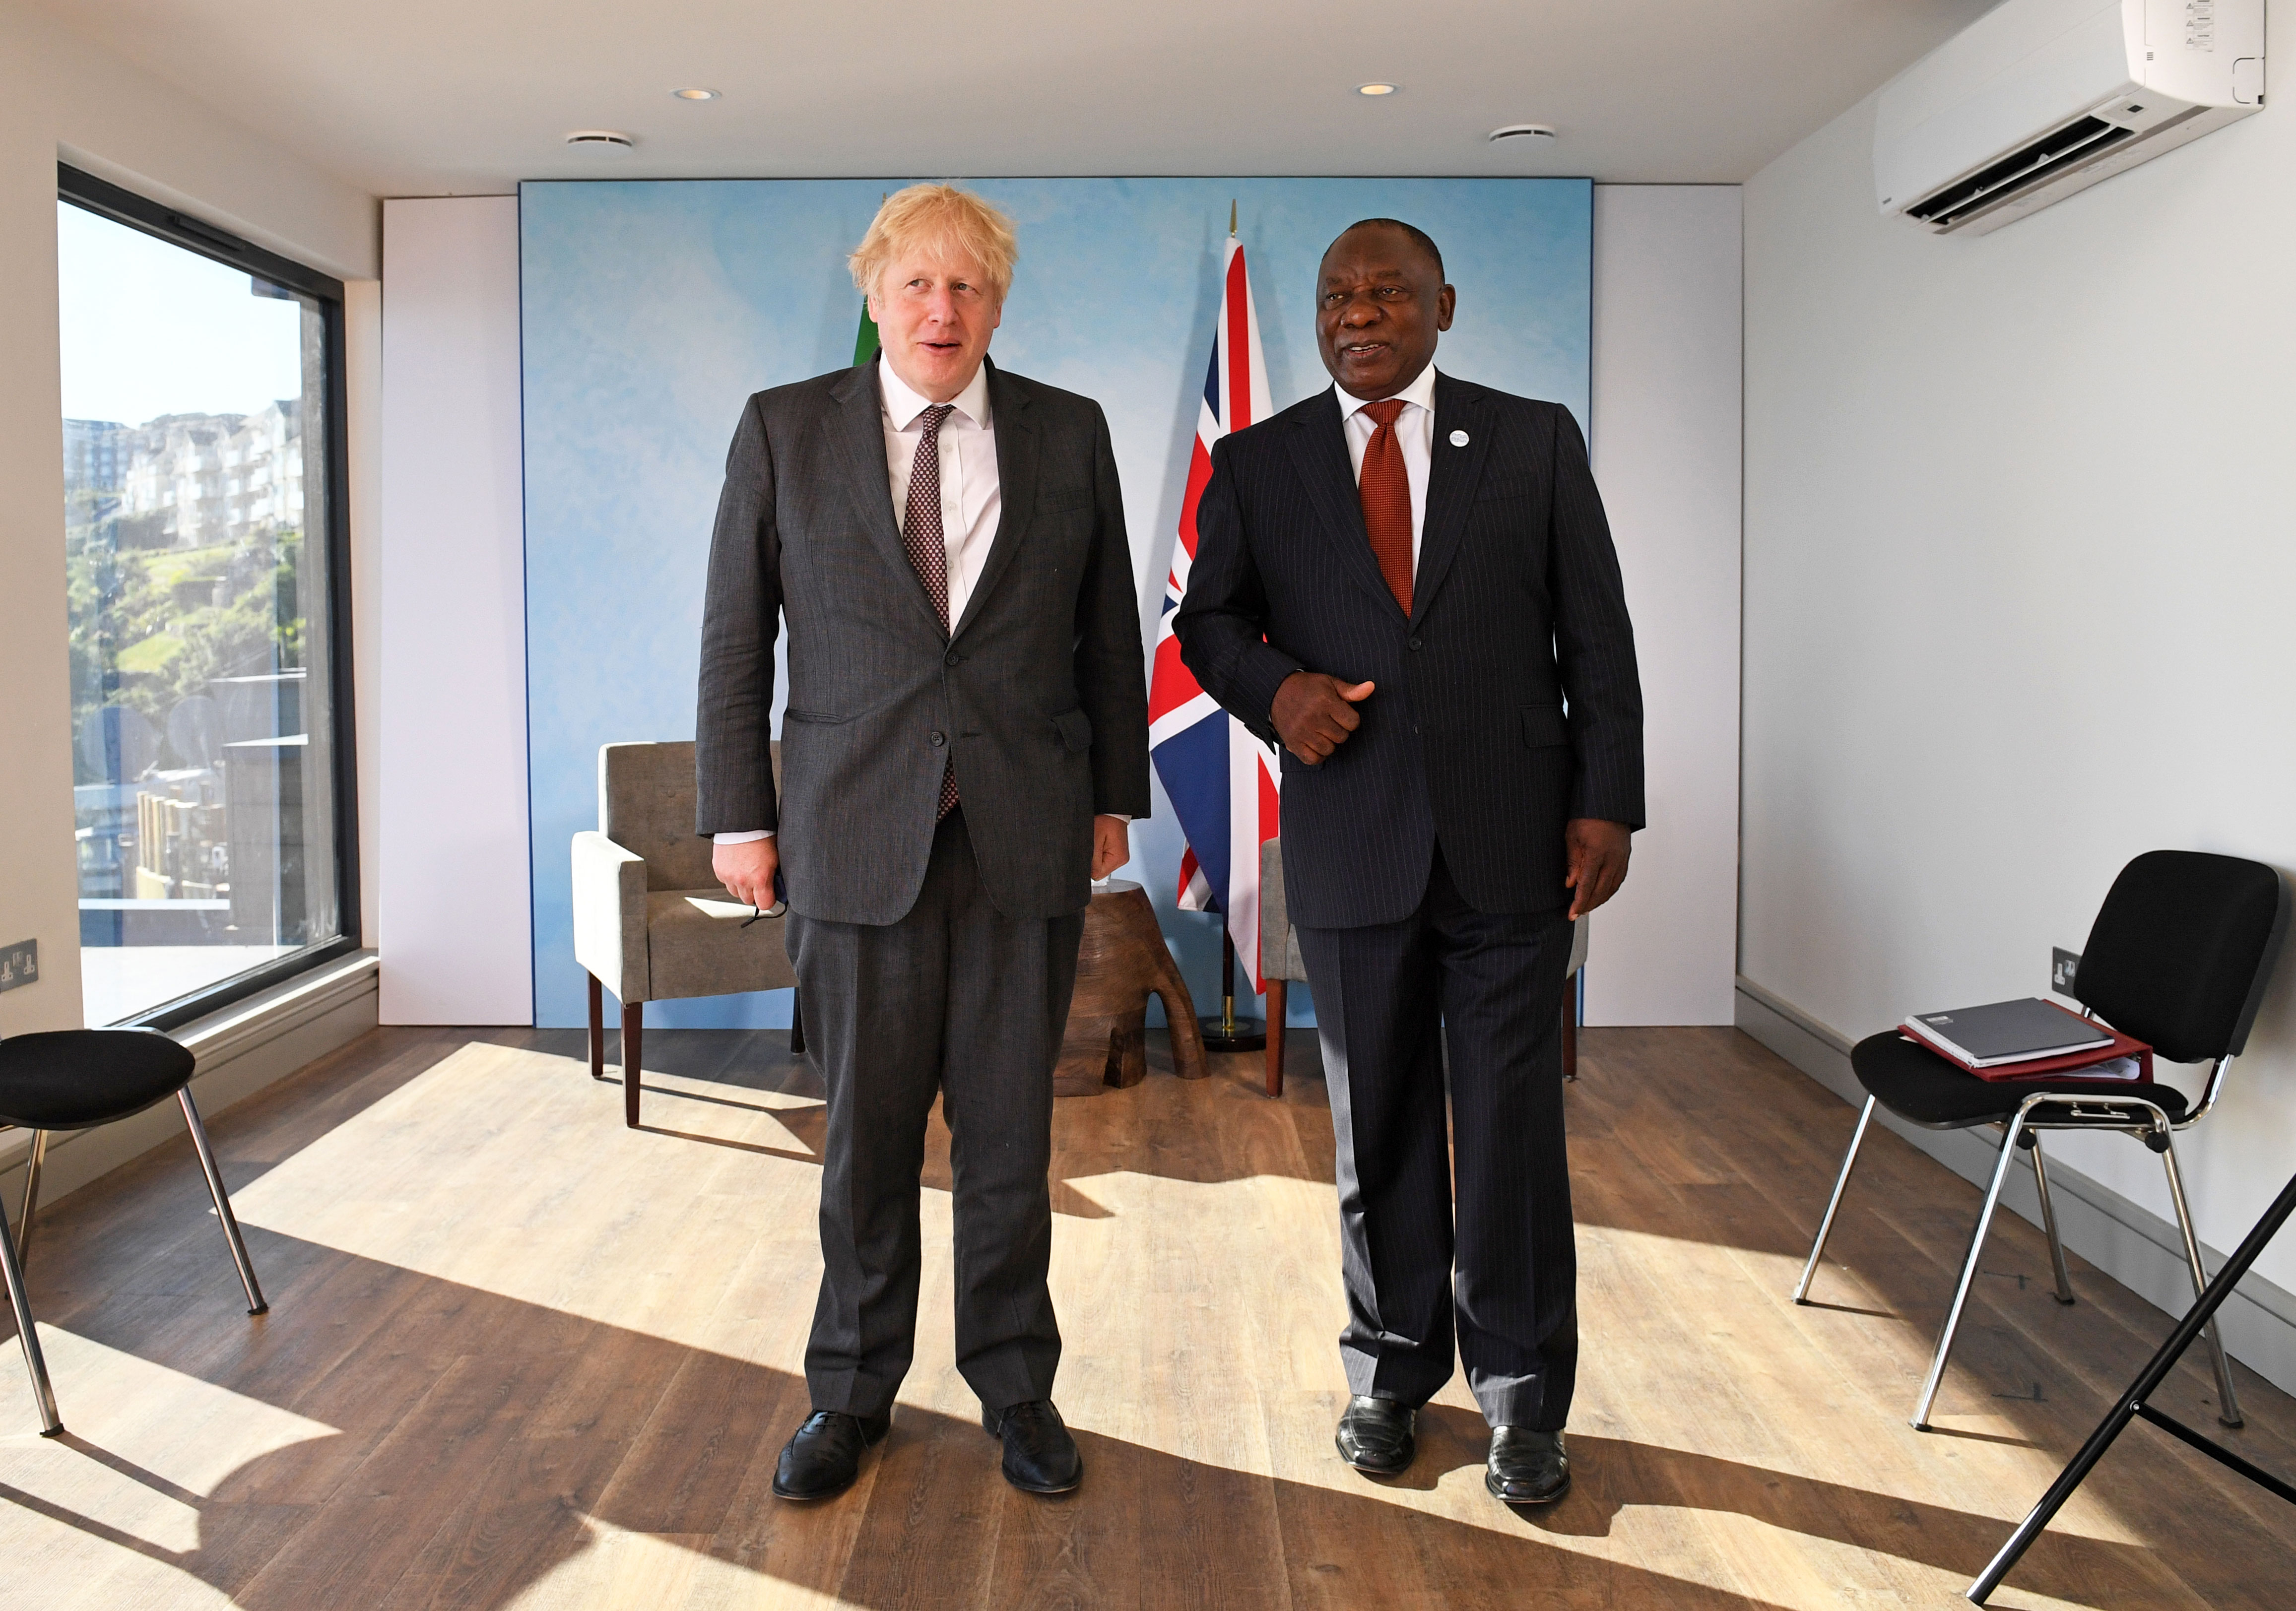 UK Prime Minister Boris Johnson and South African President Cyril Ramaphosa pose for a photo ahead of a bilateral meeting in Carbis Bay, England, on June 13.